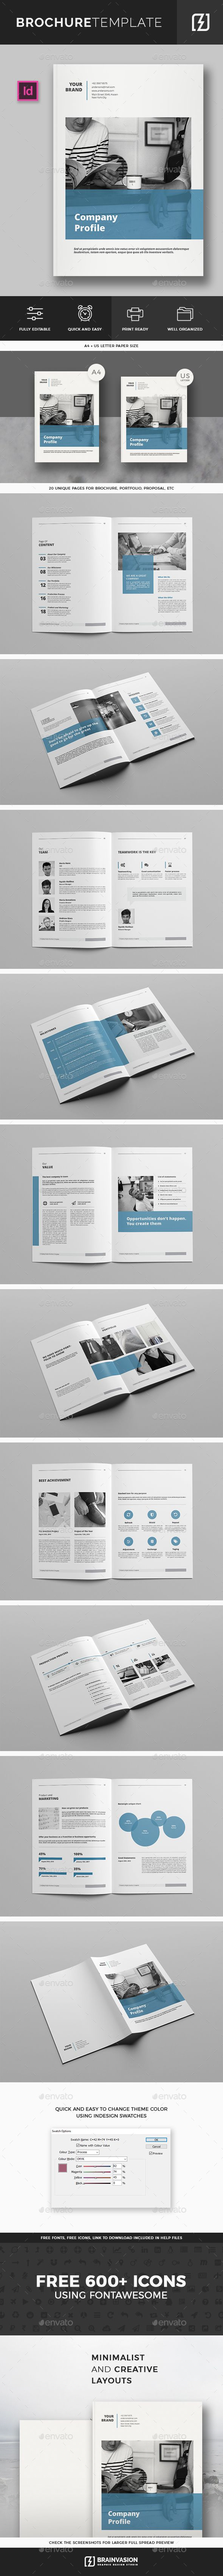 Company Profile Brochure Template | Grafikdesign und Katalog